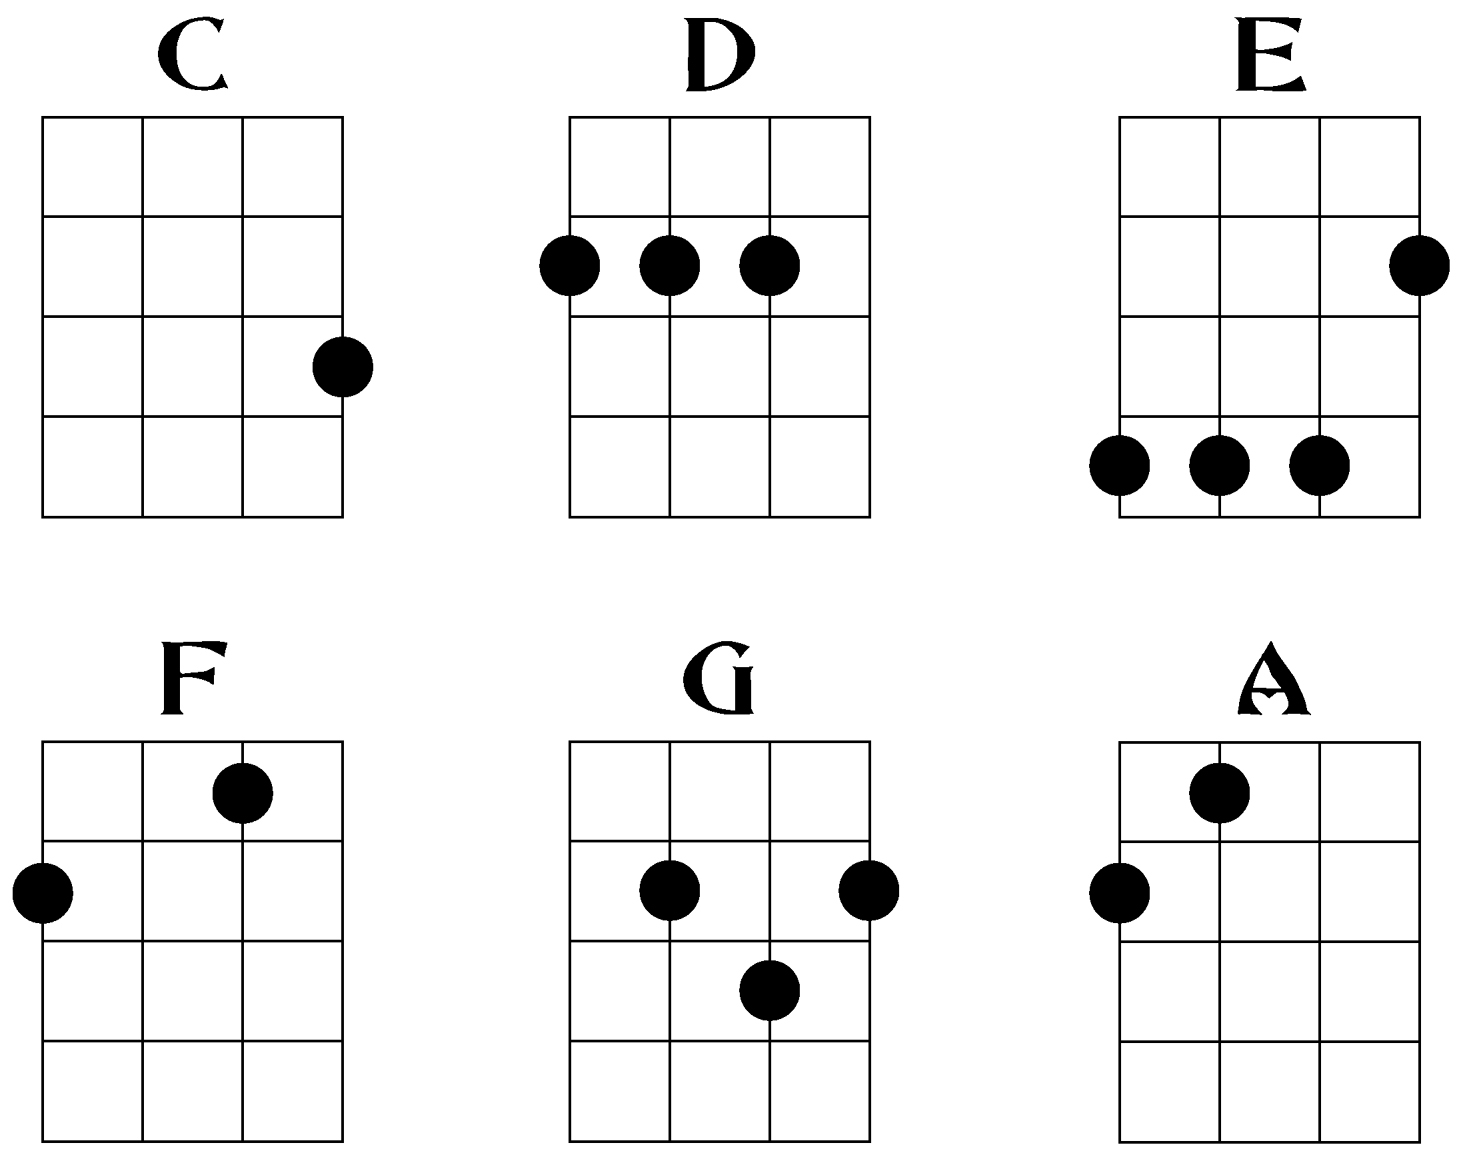 photograph regarding Printable Ukulele Chord Chart for Beginners referred to as Ukulele Chords How towards Perform Ukulele - Austin Bazaar Audio